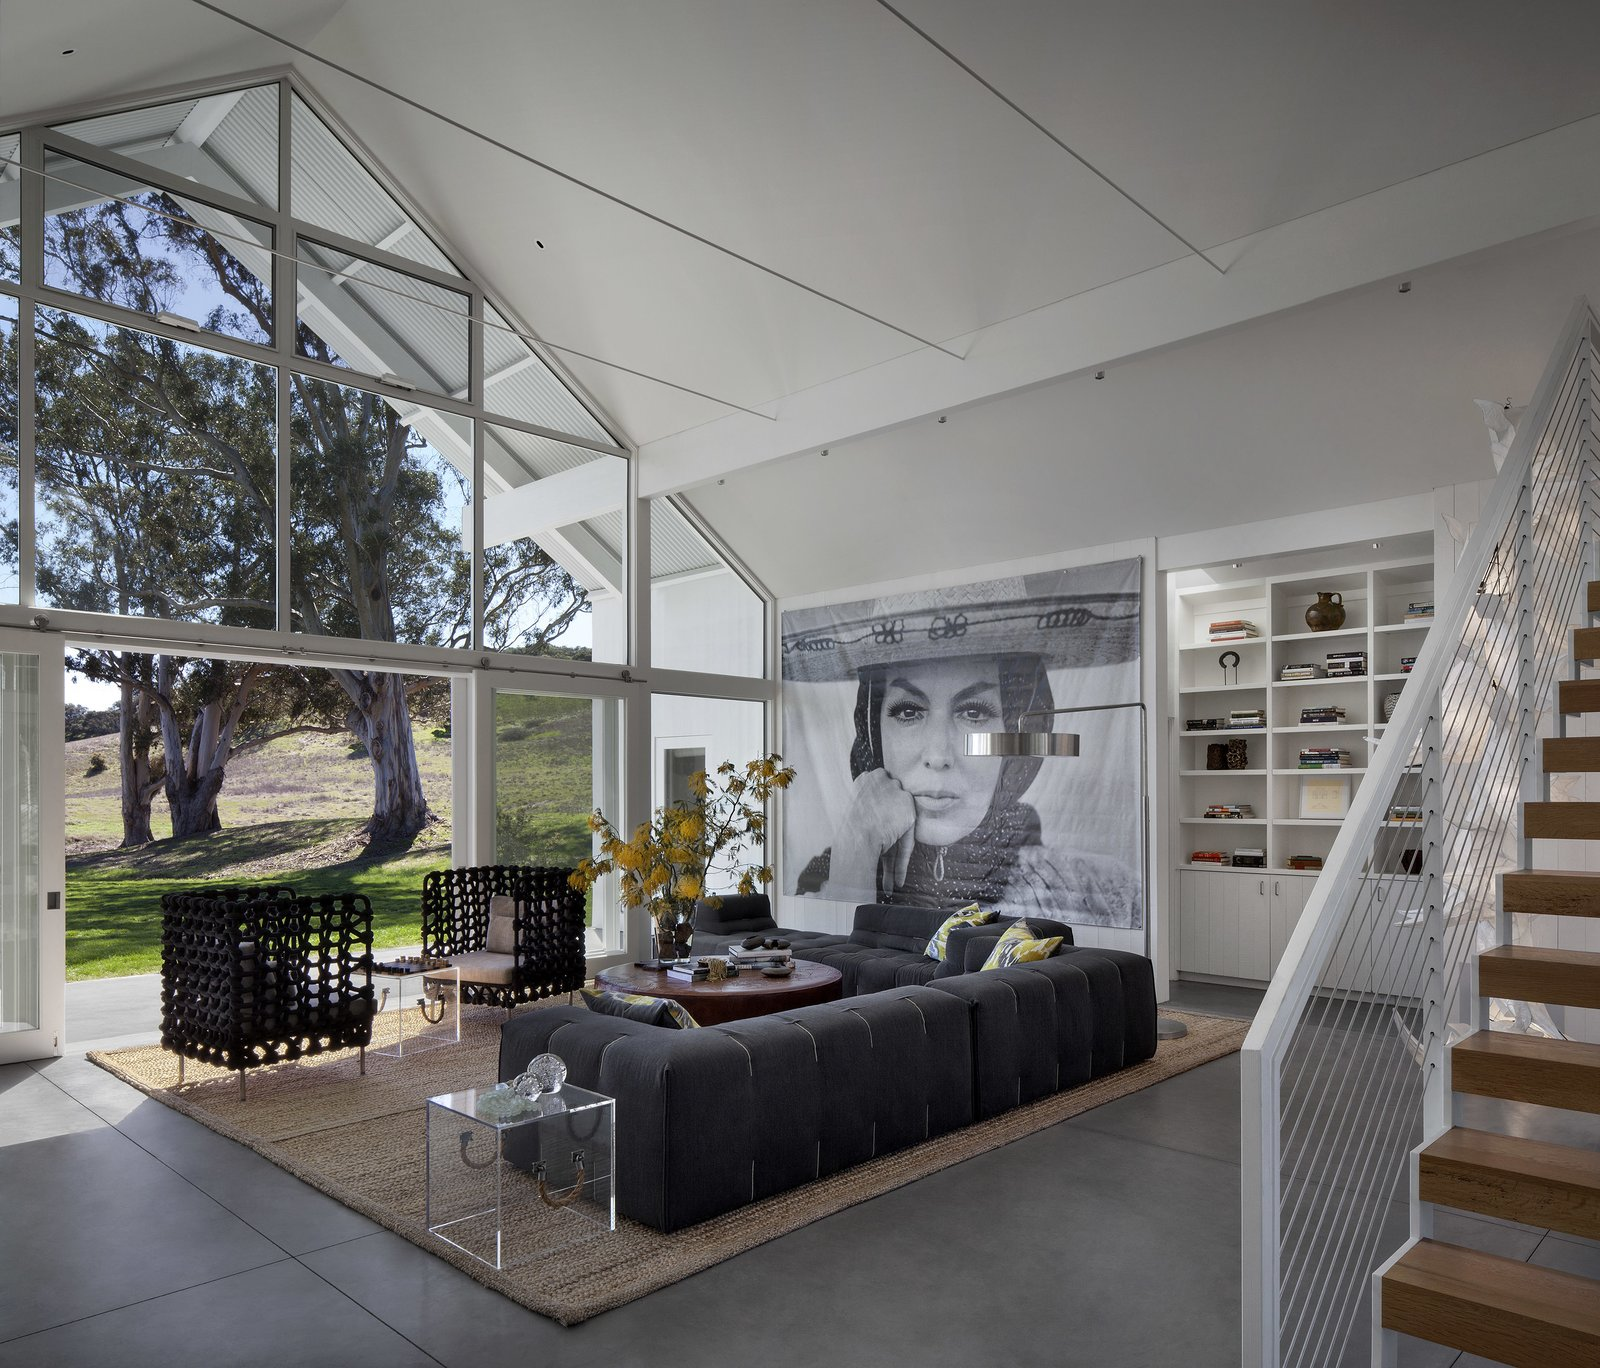 #TurnbullGriffinHaesloop #interior #livingroom #window Tagged: Living Room, Sofa, Concrete Floor, and Chair. Hupomone Ranch by Turnbull Griffin Haesloop Architects